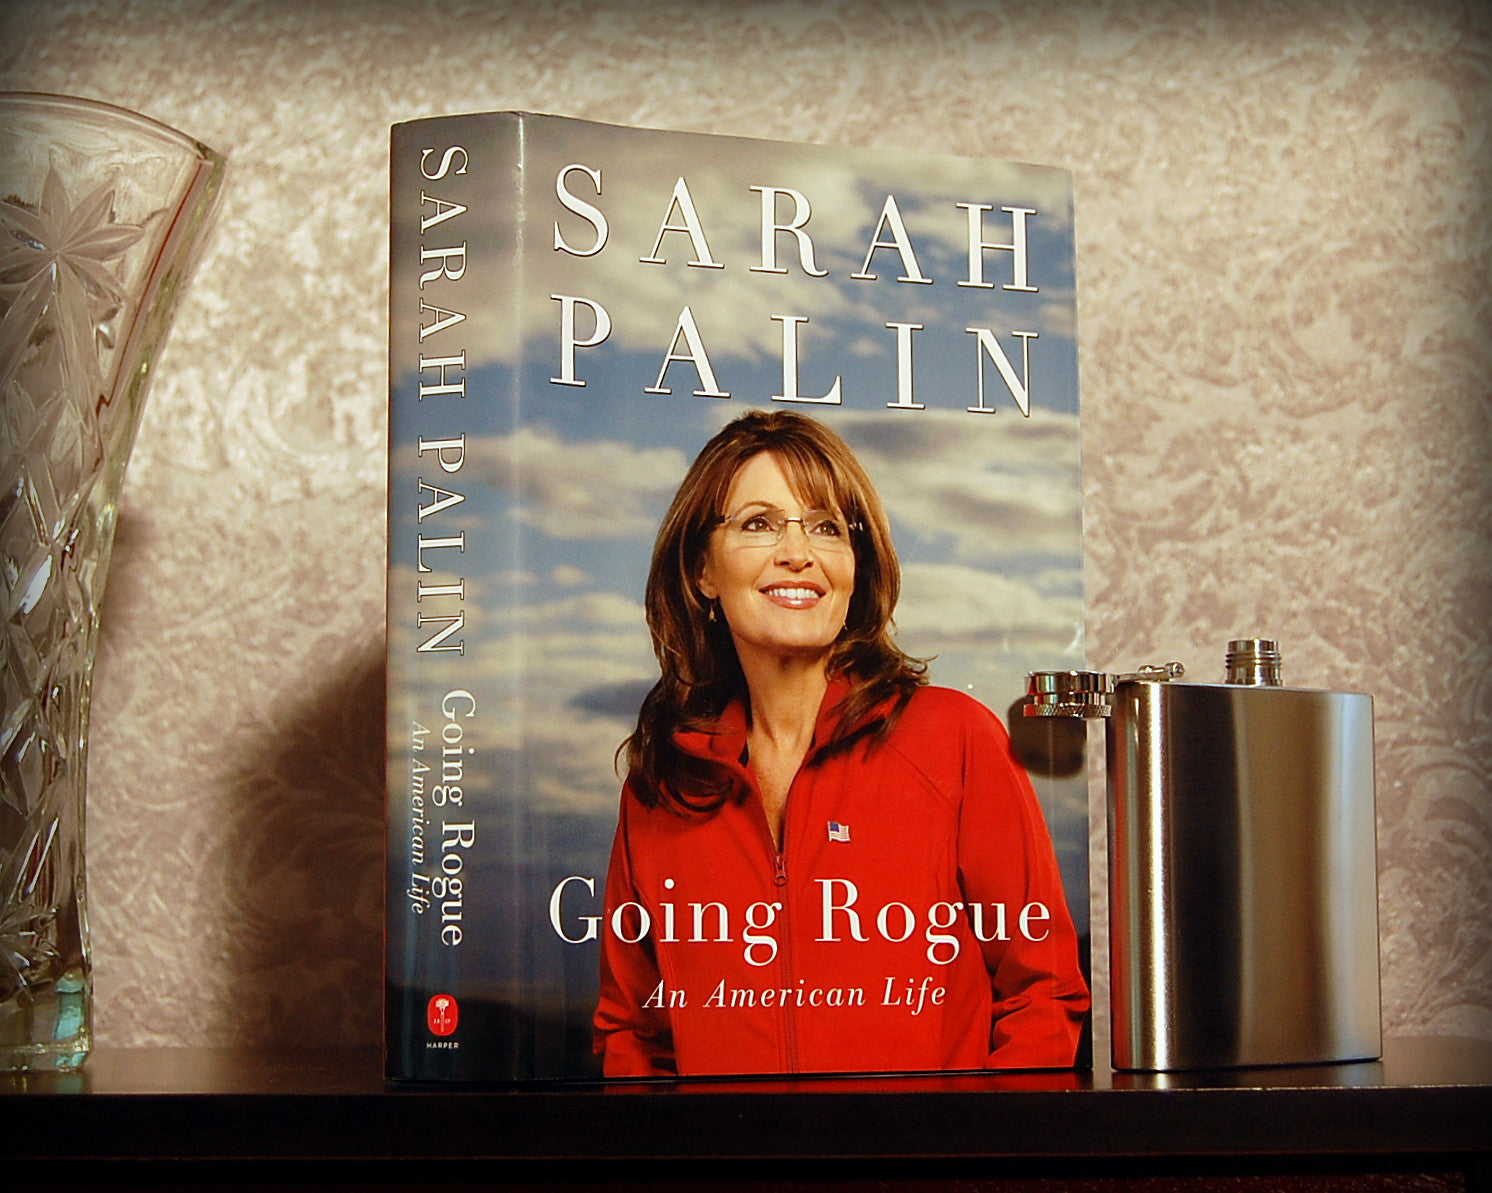 Going Rogue / Sarah Palin - Secret Safe Books  - 1